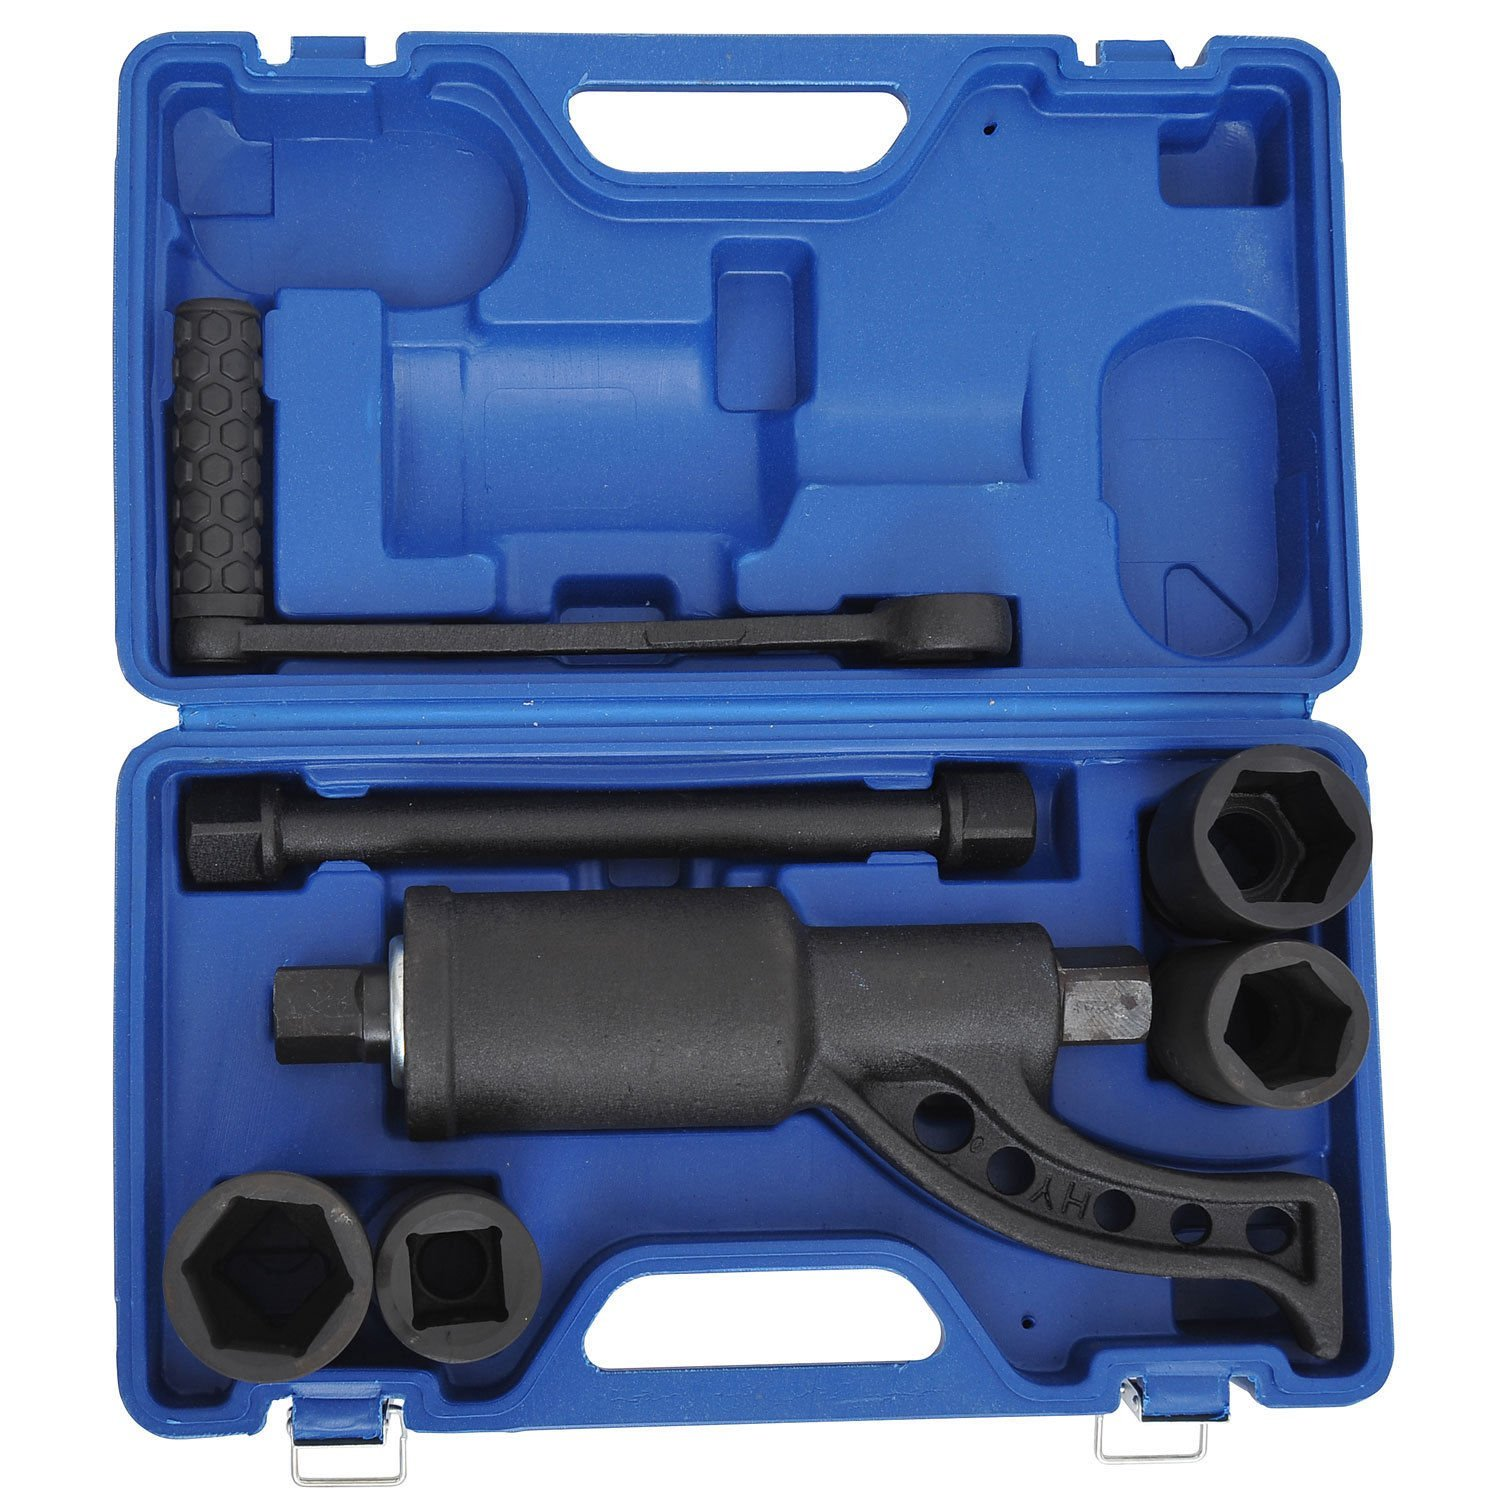 Generic DYHP-A10-CODE-4658-CLASS-8-- Saving Lugnut Remover Case Case Nut Labor ving Heavy Duty Torque nch Lug Multiplier Set e Mul Wrench Lug Duty To --NV_1008004658-CXL-US10